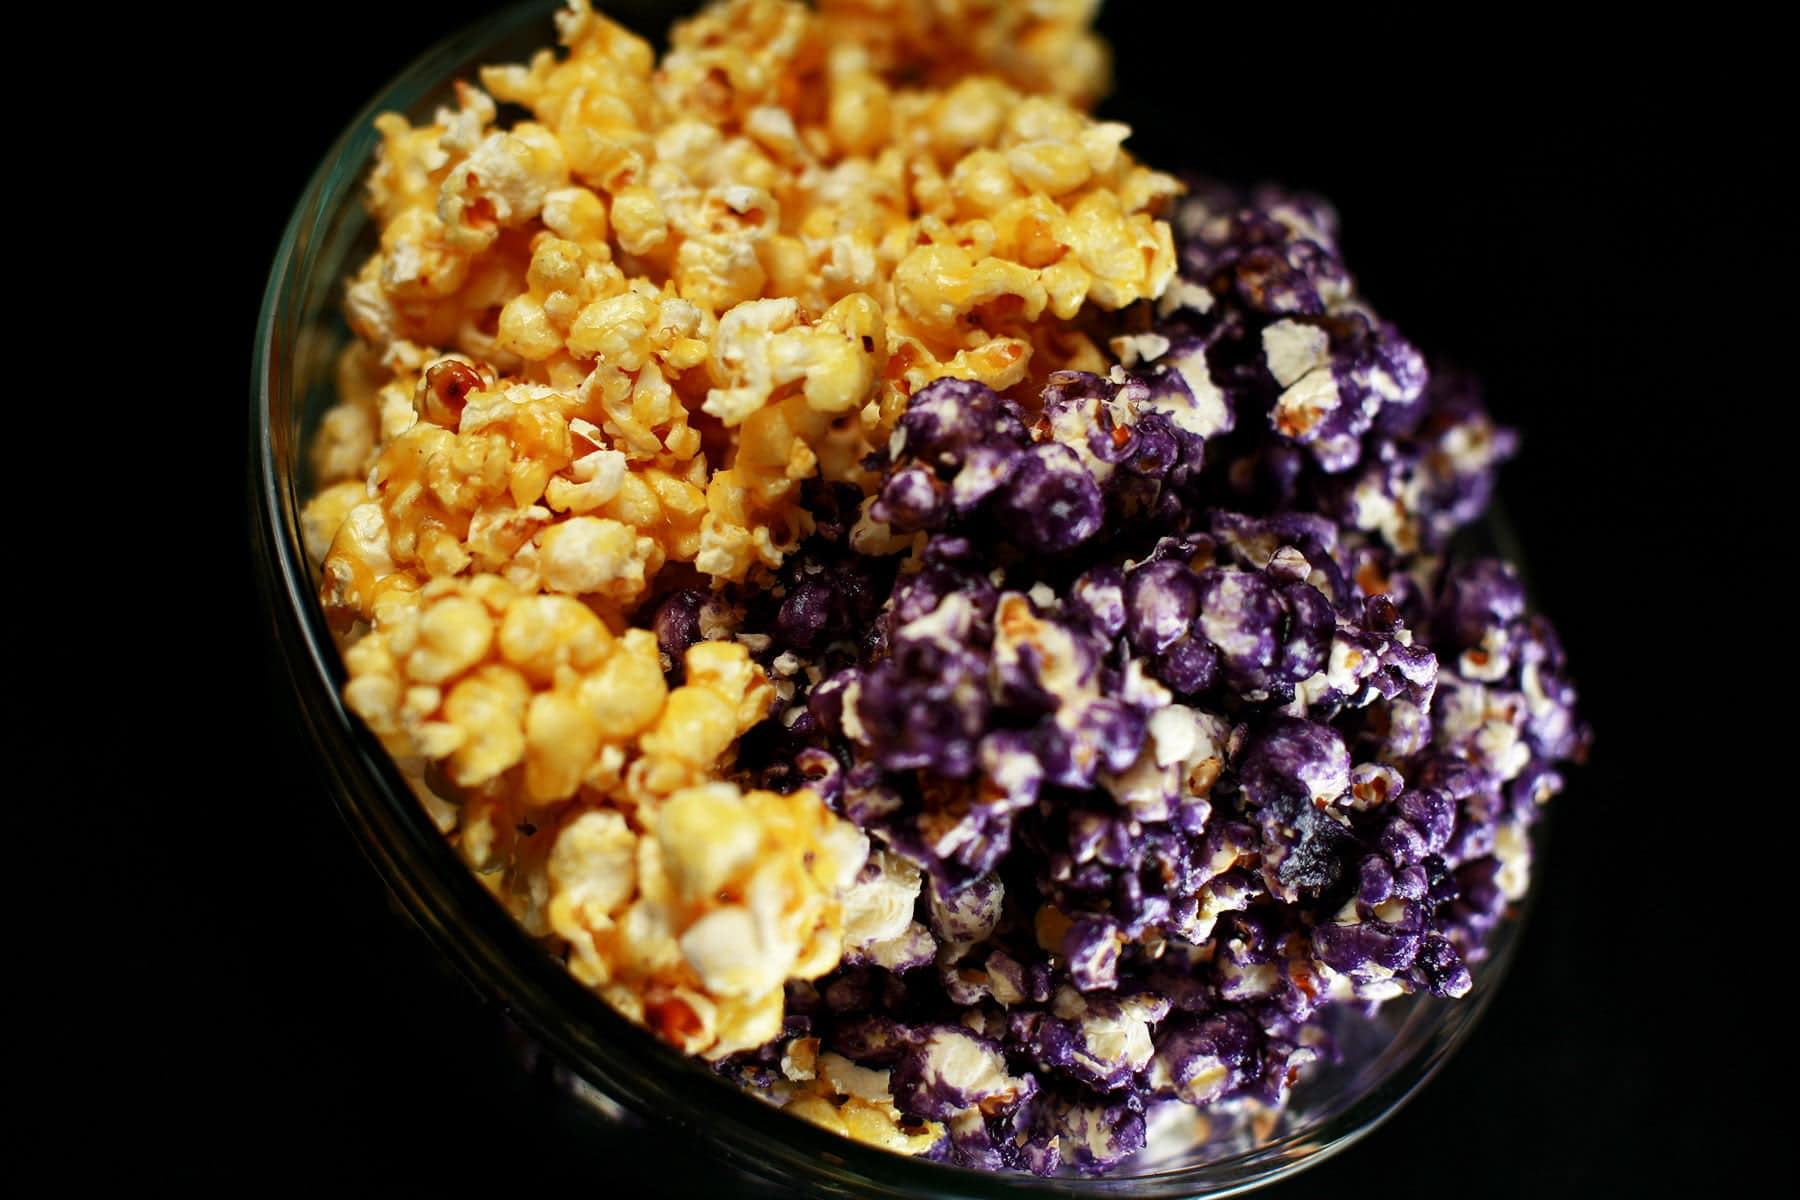 A close up view of yellow and purple fruity glazed popcorn.